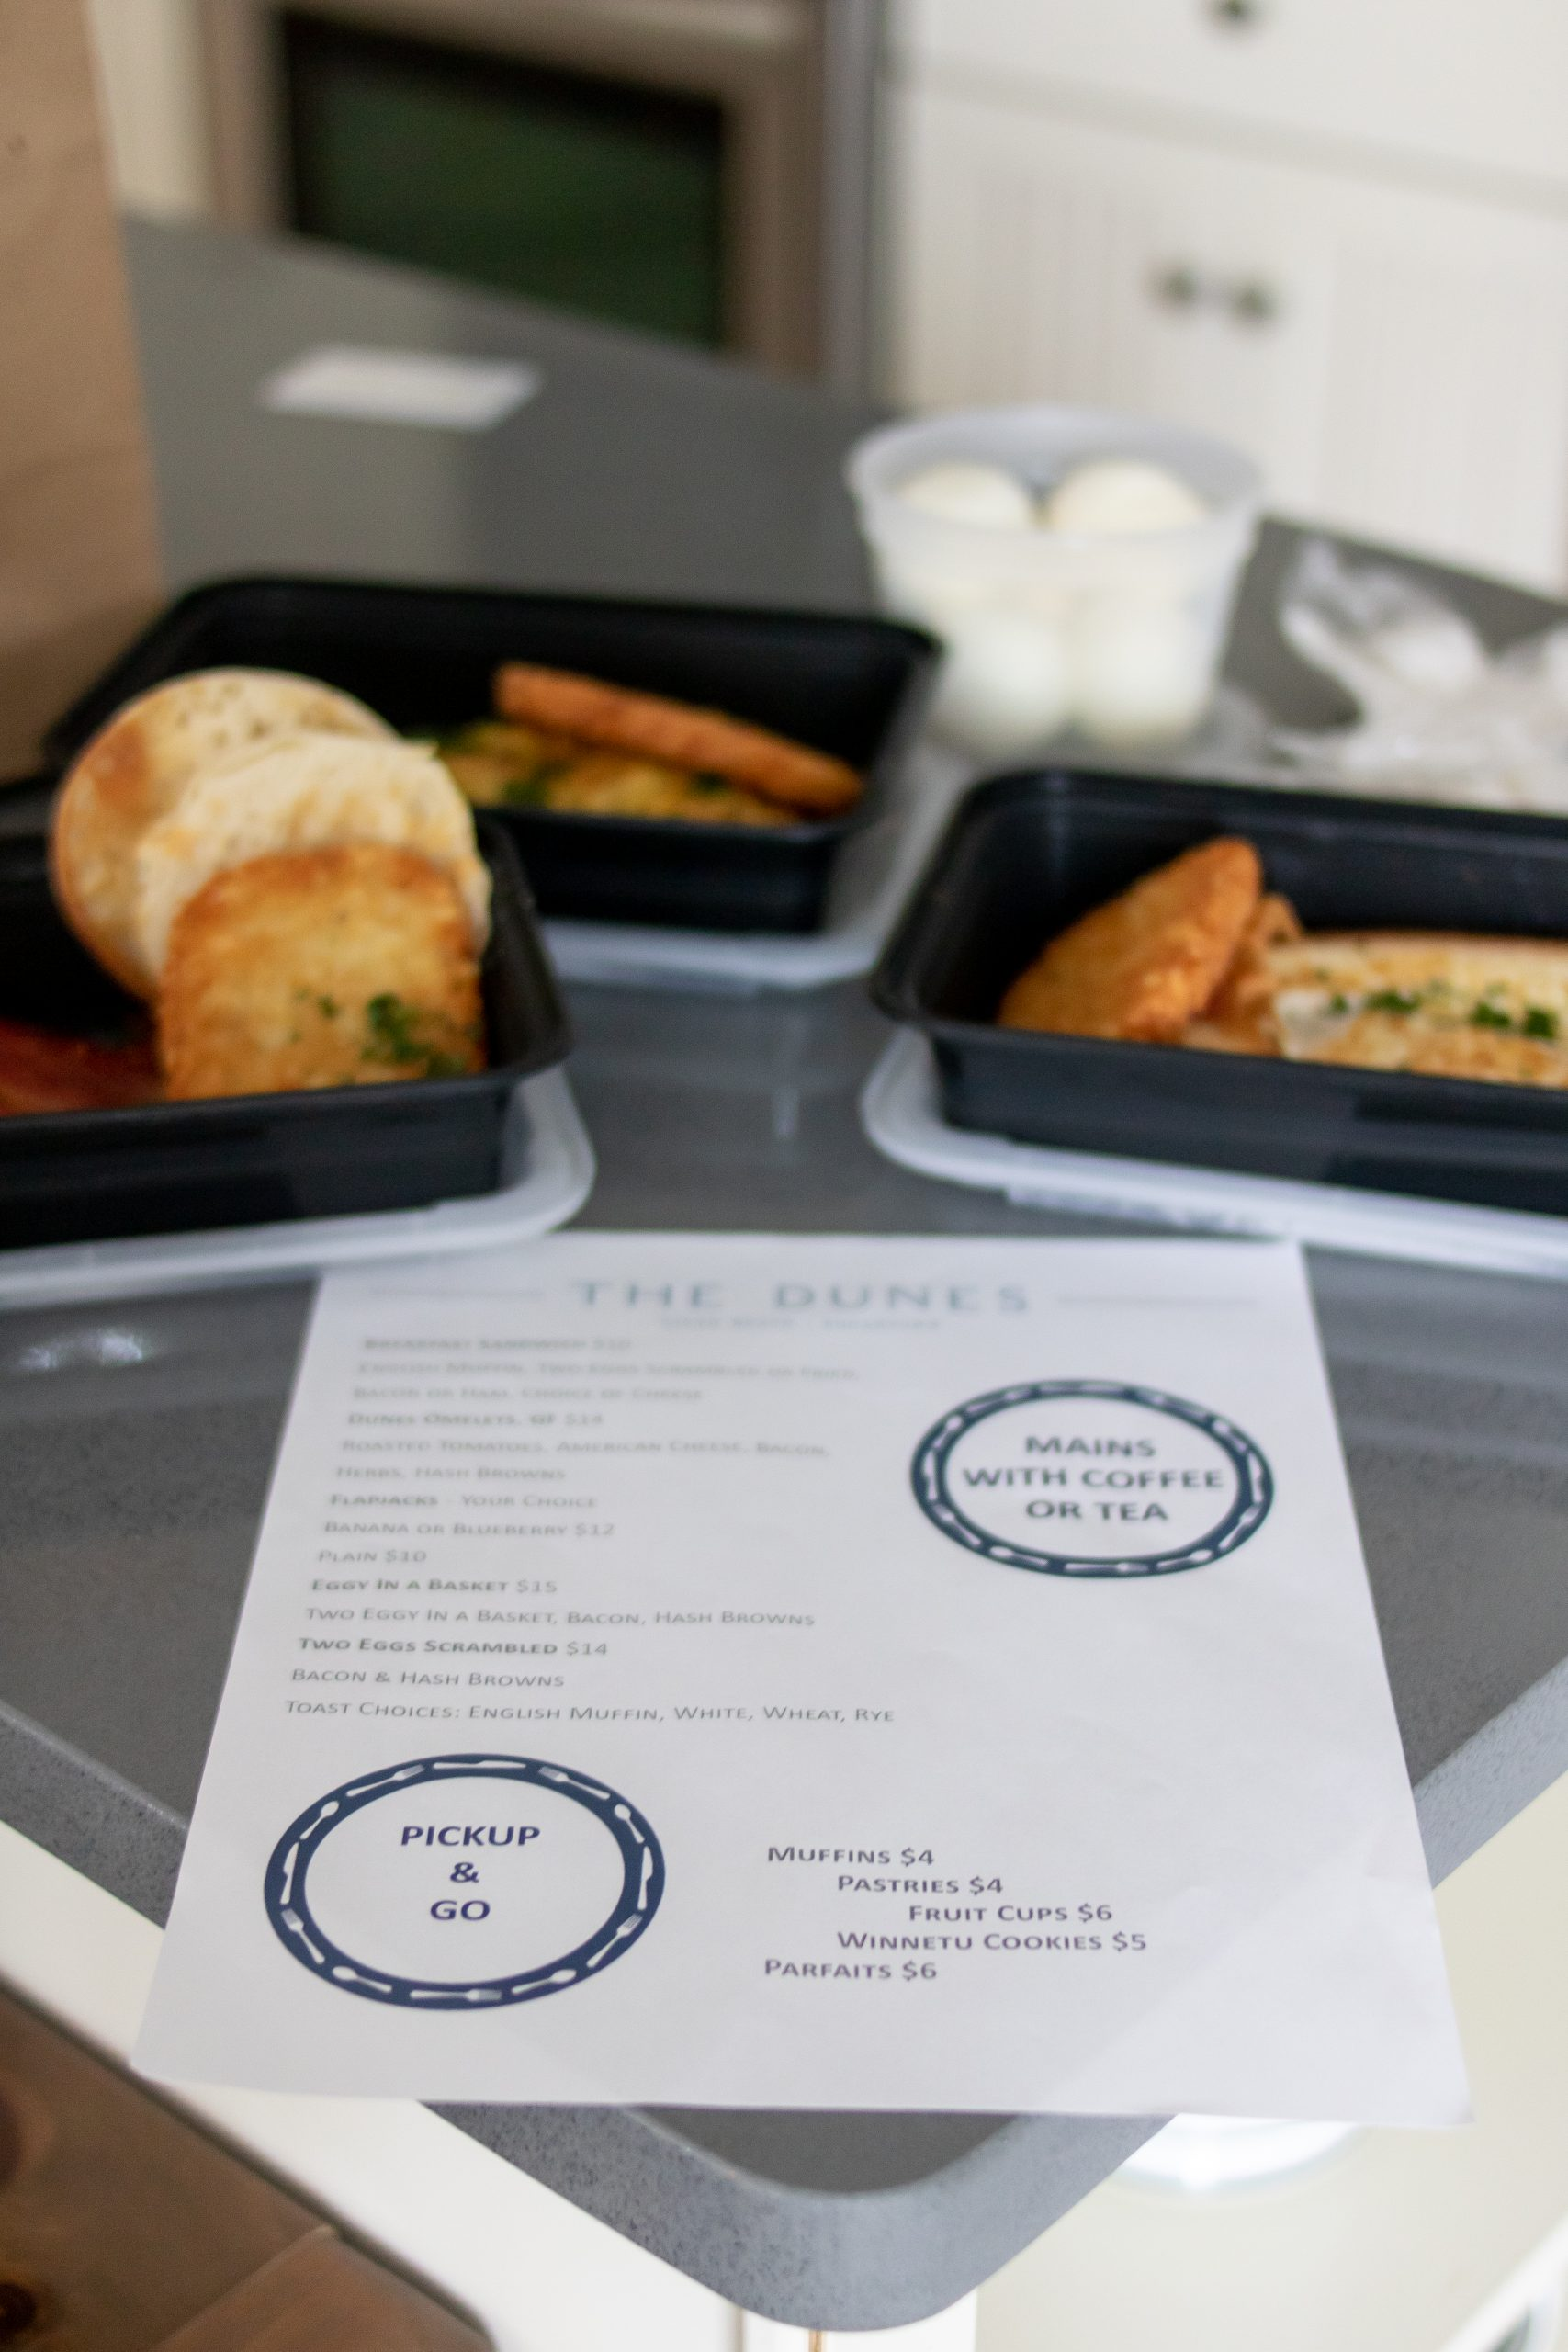 breakfast and pickup and go menu at Winnetu Oceanside Resort